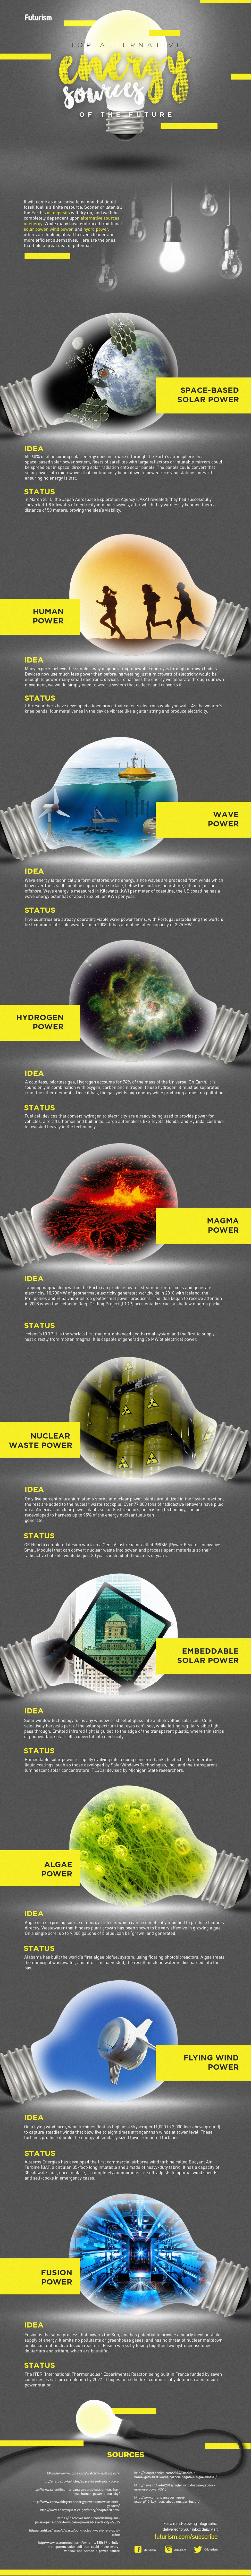 Best Renewable Energy Sources For Our Future - Infographic